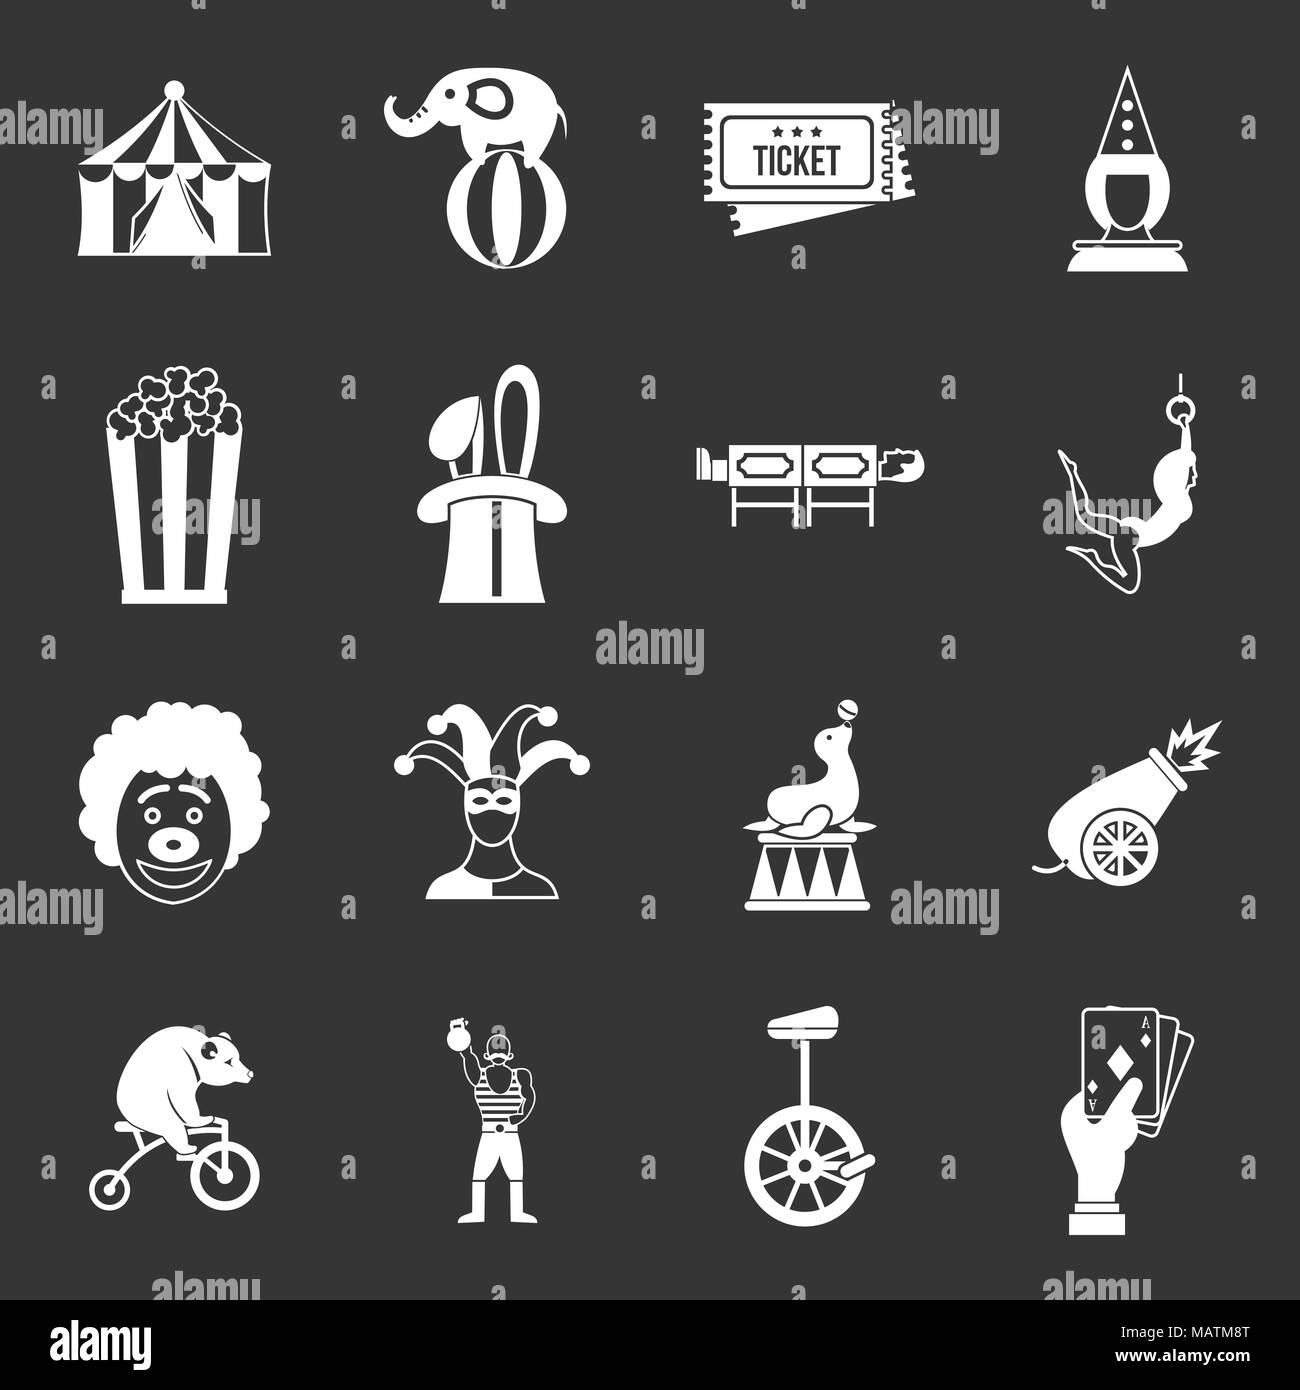 Circus entertainment icons set grey vector - Stock Image